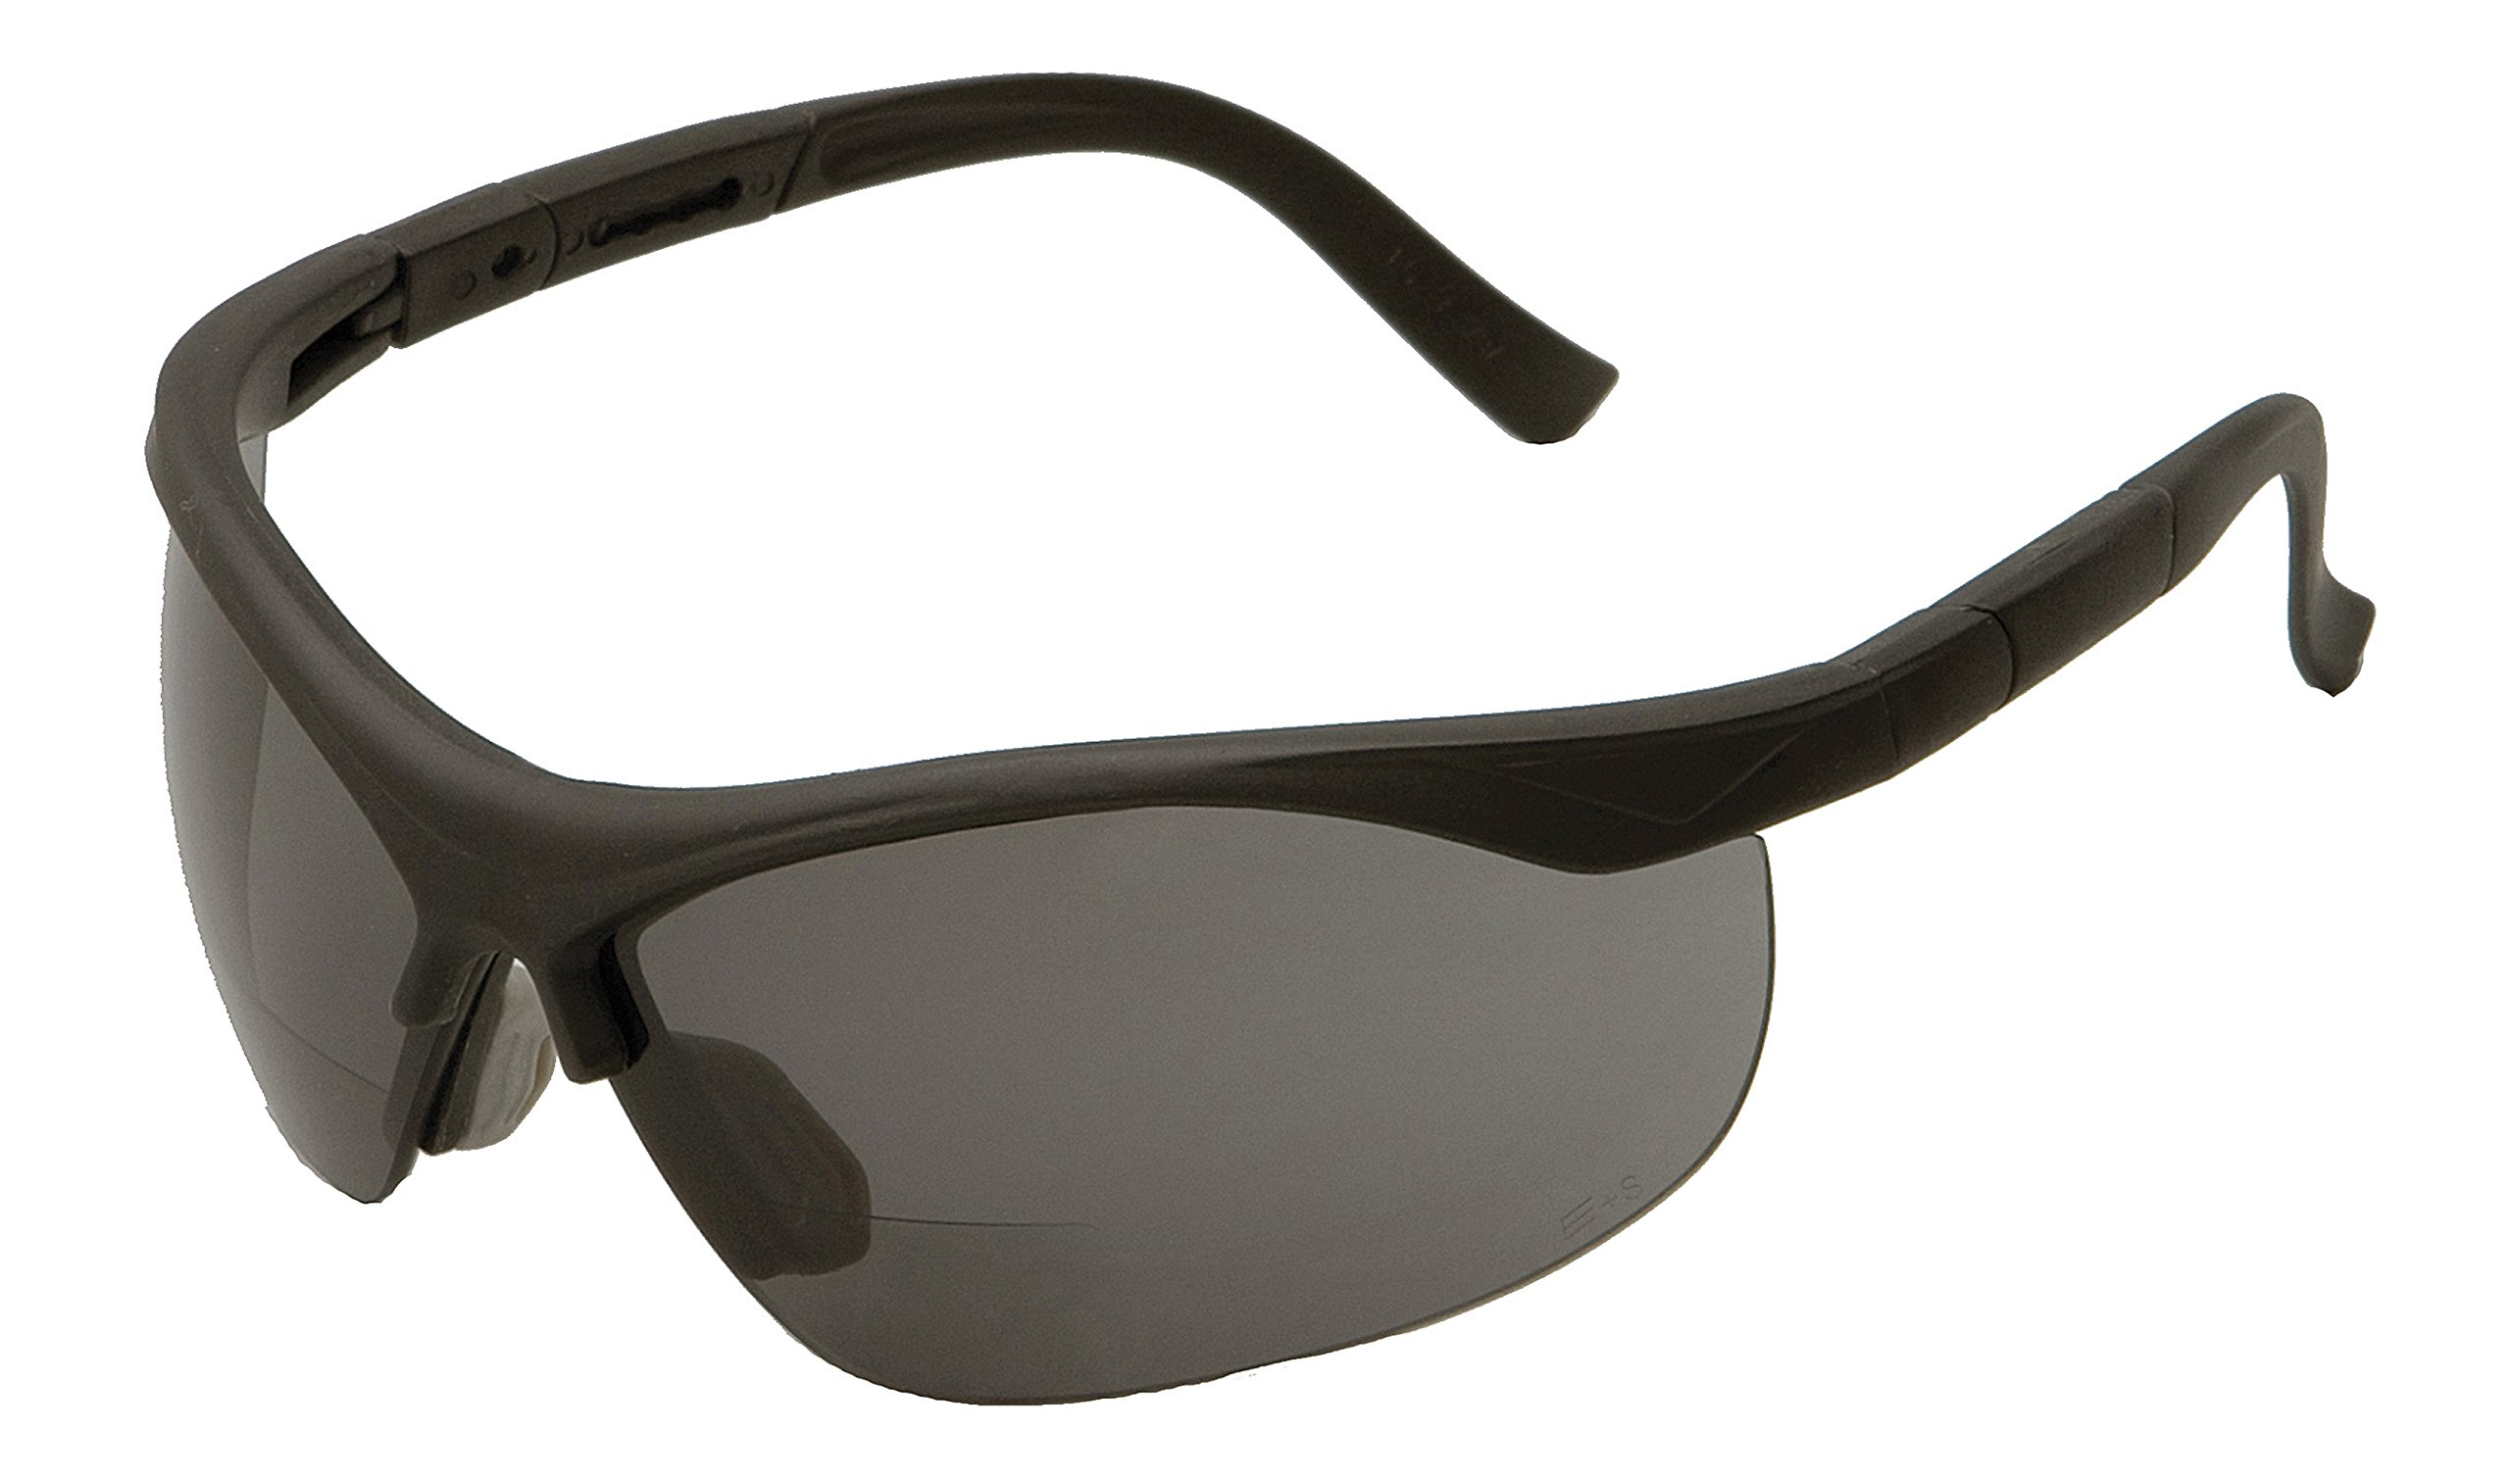 ERB 16874 ERBx Safety Glasses with +1.0 Bifocal Power, Black Frame with Smoke Lens